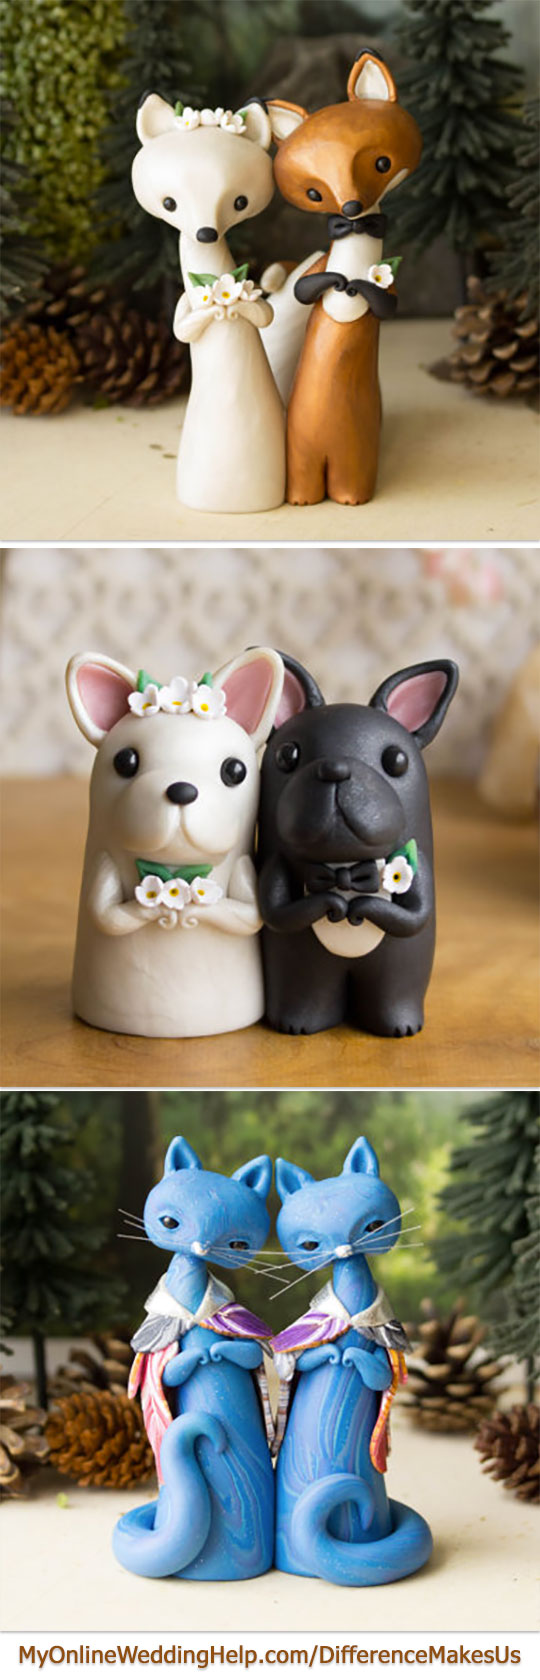 These are the cutest Etsy animal cake toppers. Love the little dog bride and groom the best. No paint used, which means they can sit right on the icing. Any of them would be good keepsake gifts, too. #DifferenceMakesUs